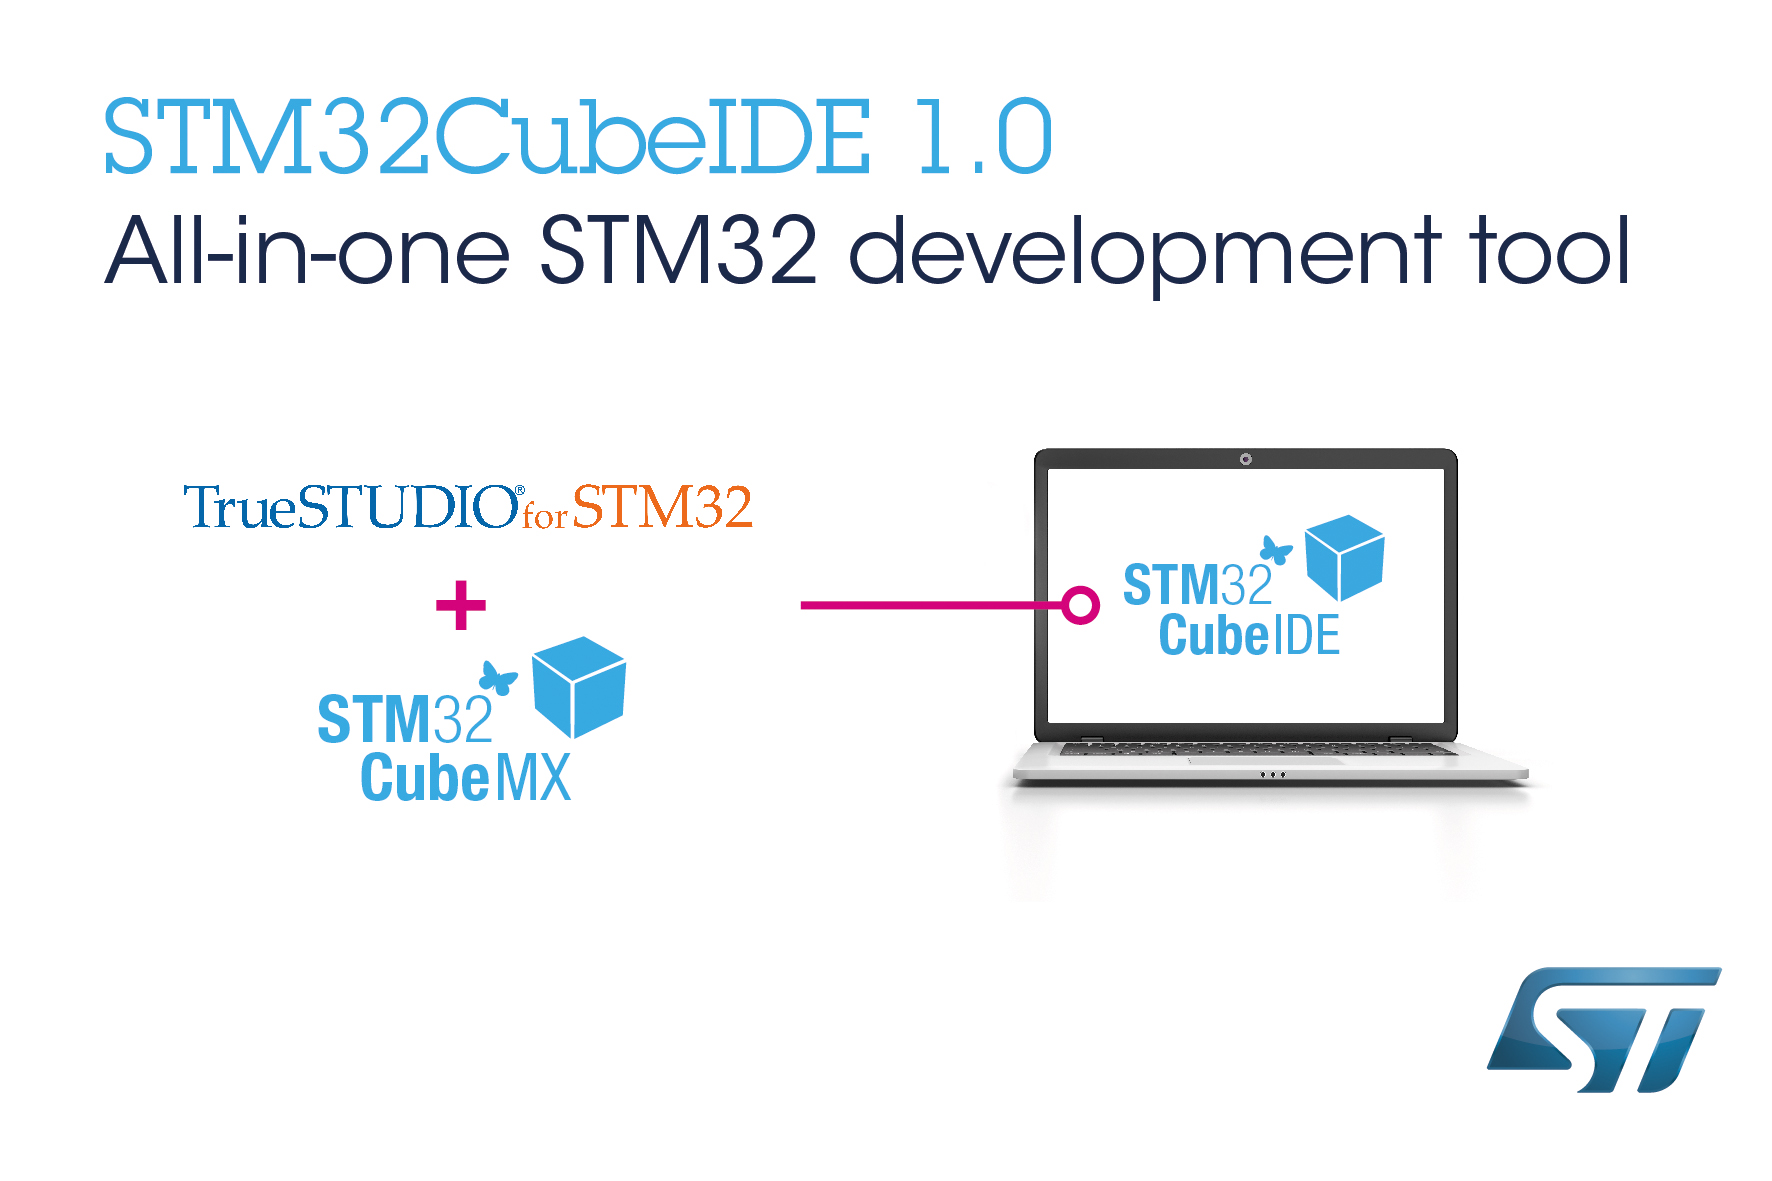 Free Integrated Development Environment from STMicroelectronics Further Expands Popular STM32Cube Microcontroller Ecosystem